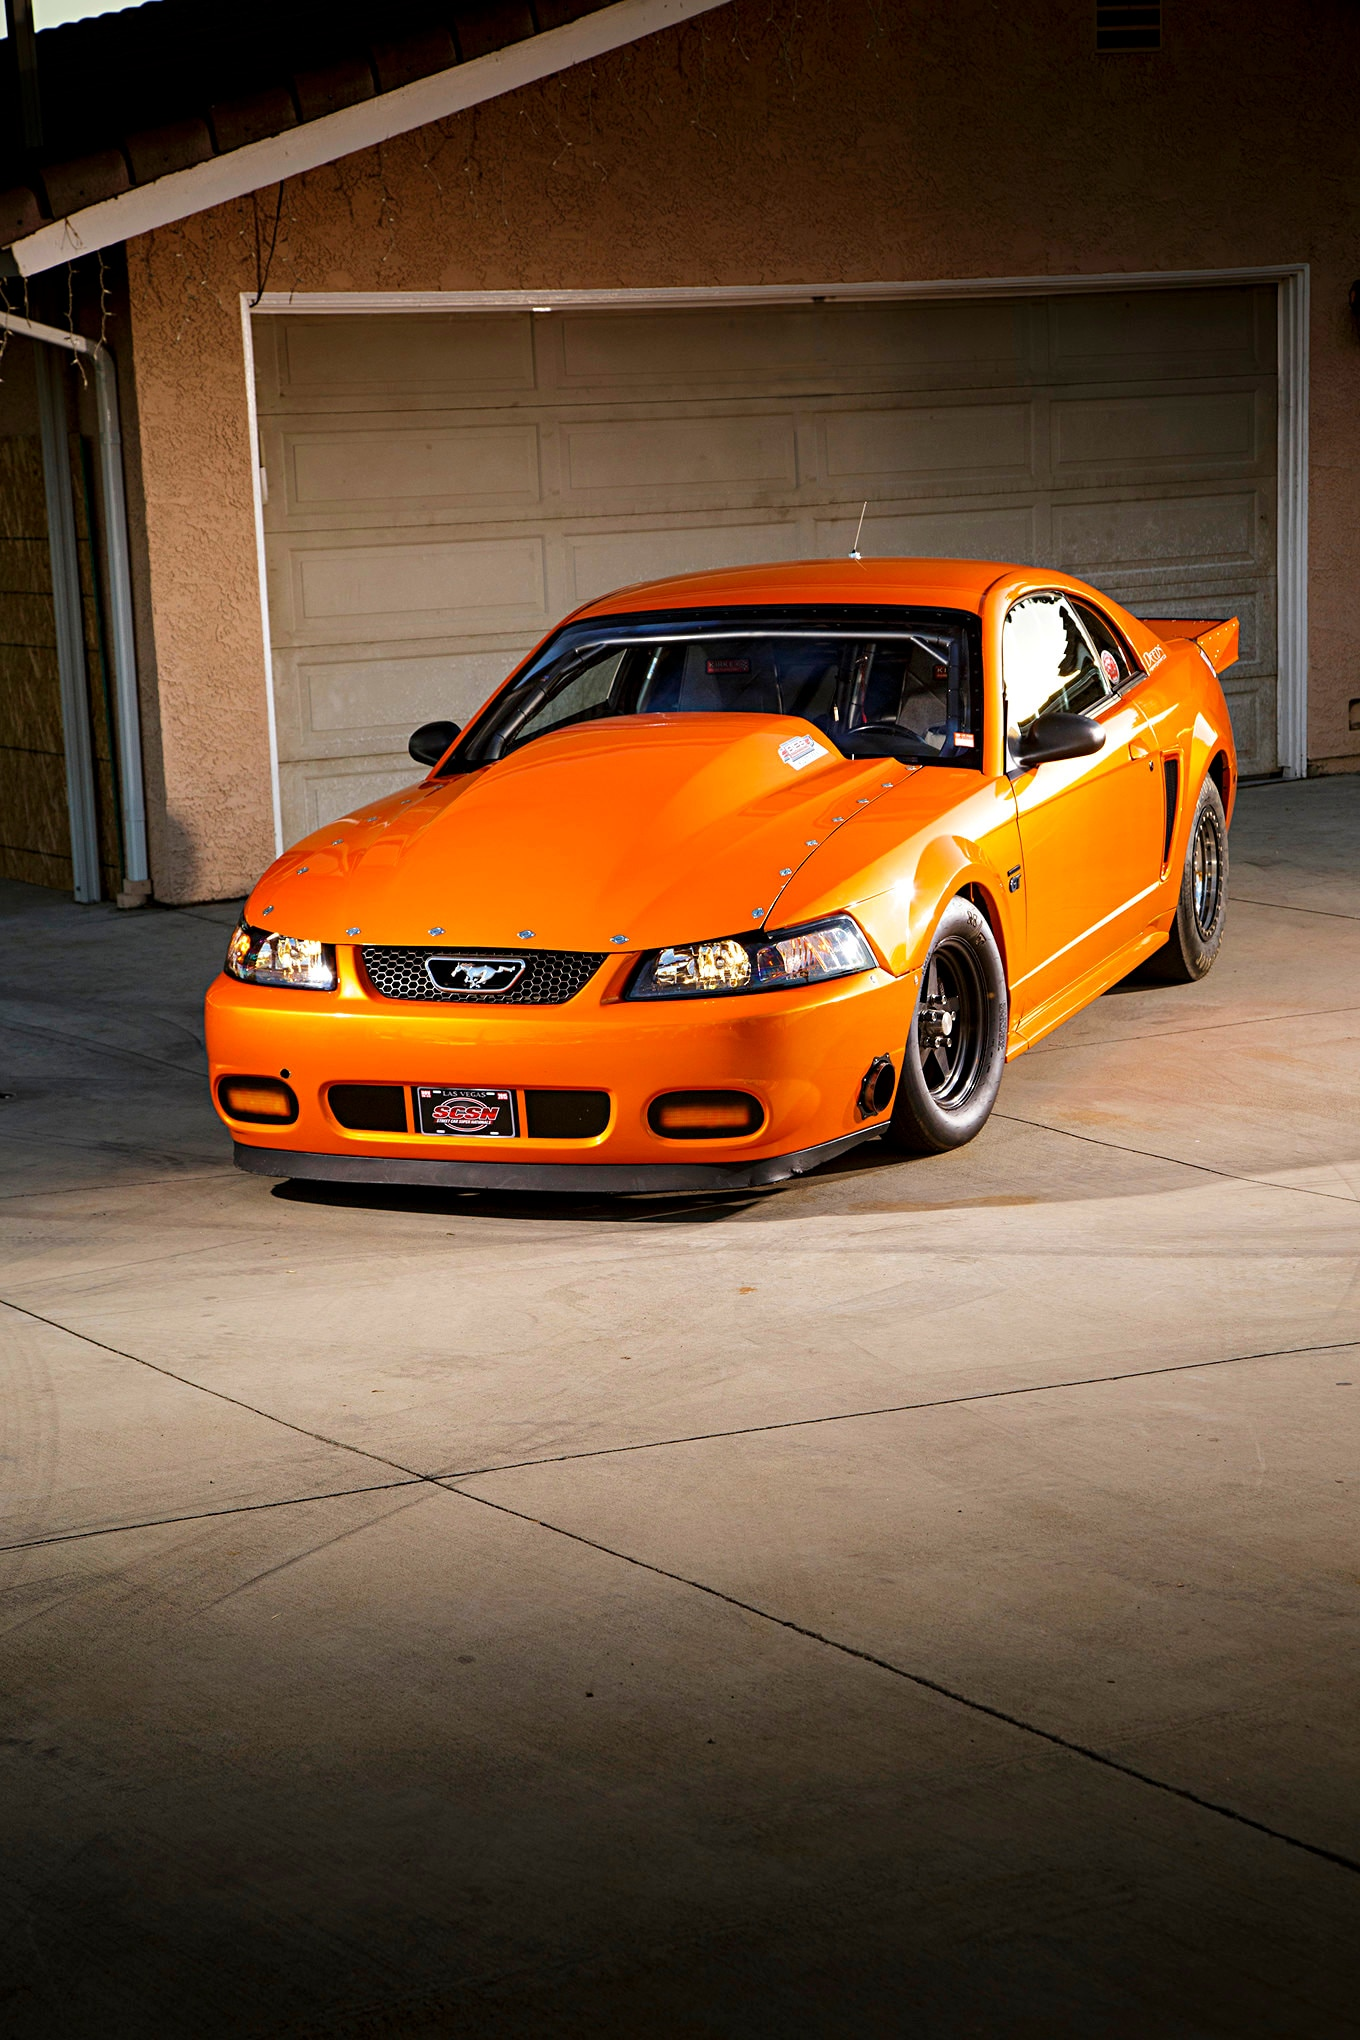 84 Orange 127295698 Photo Ford 2002 Mustang This New Edge -